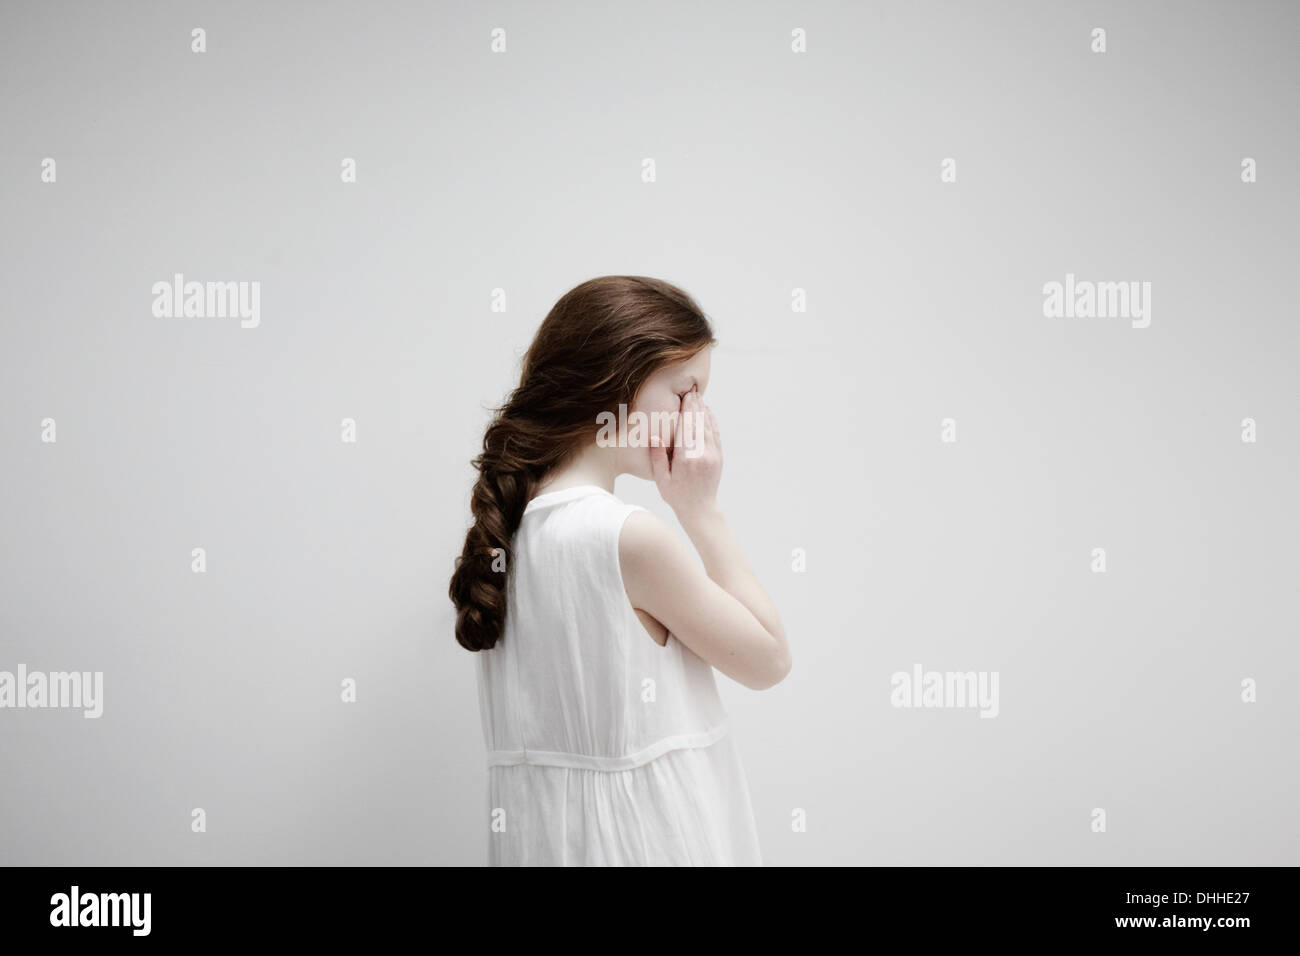 Girl posing sideways for camera - Stock Image